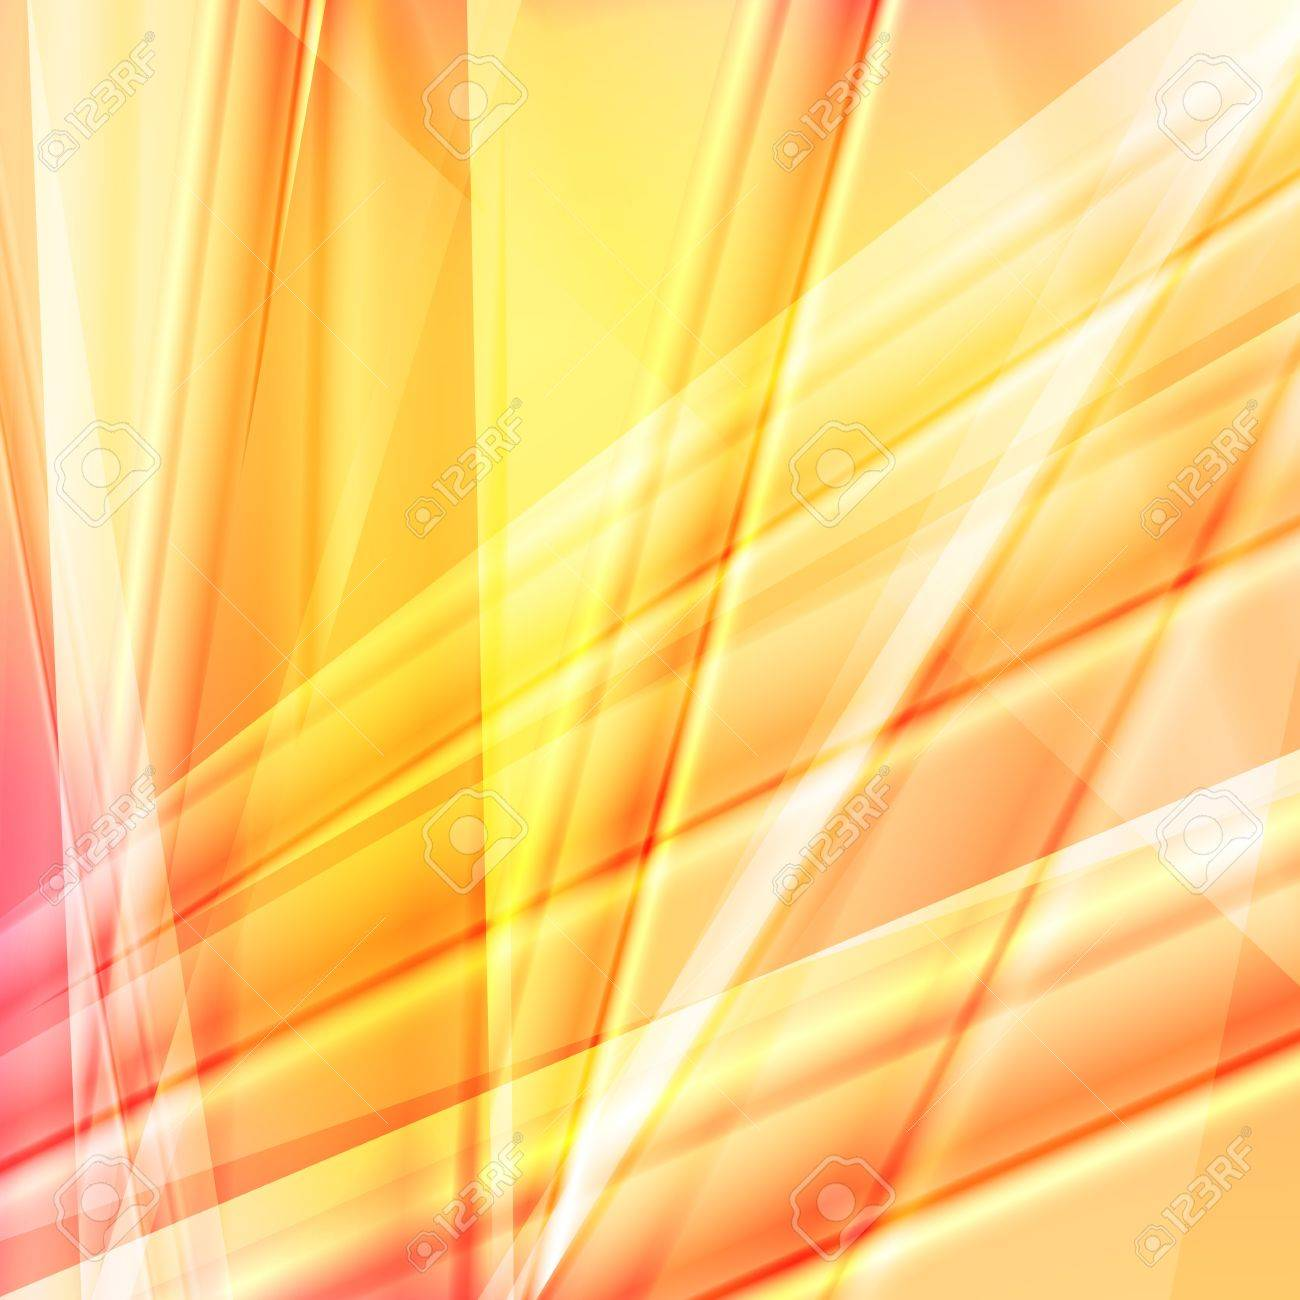 Yellow and orange lines abstract vector background concept Stock Vector - 17408019